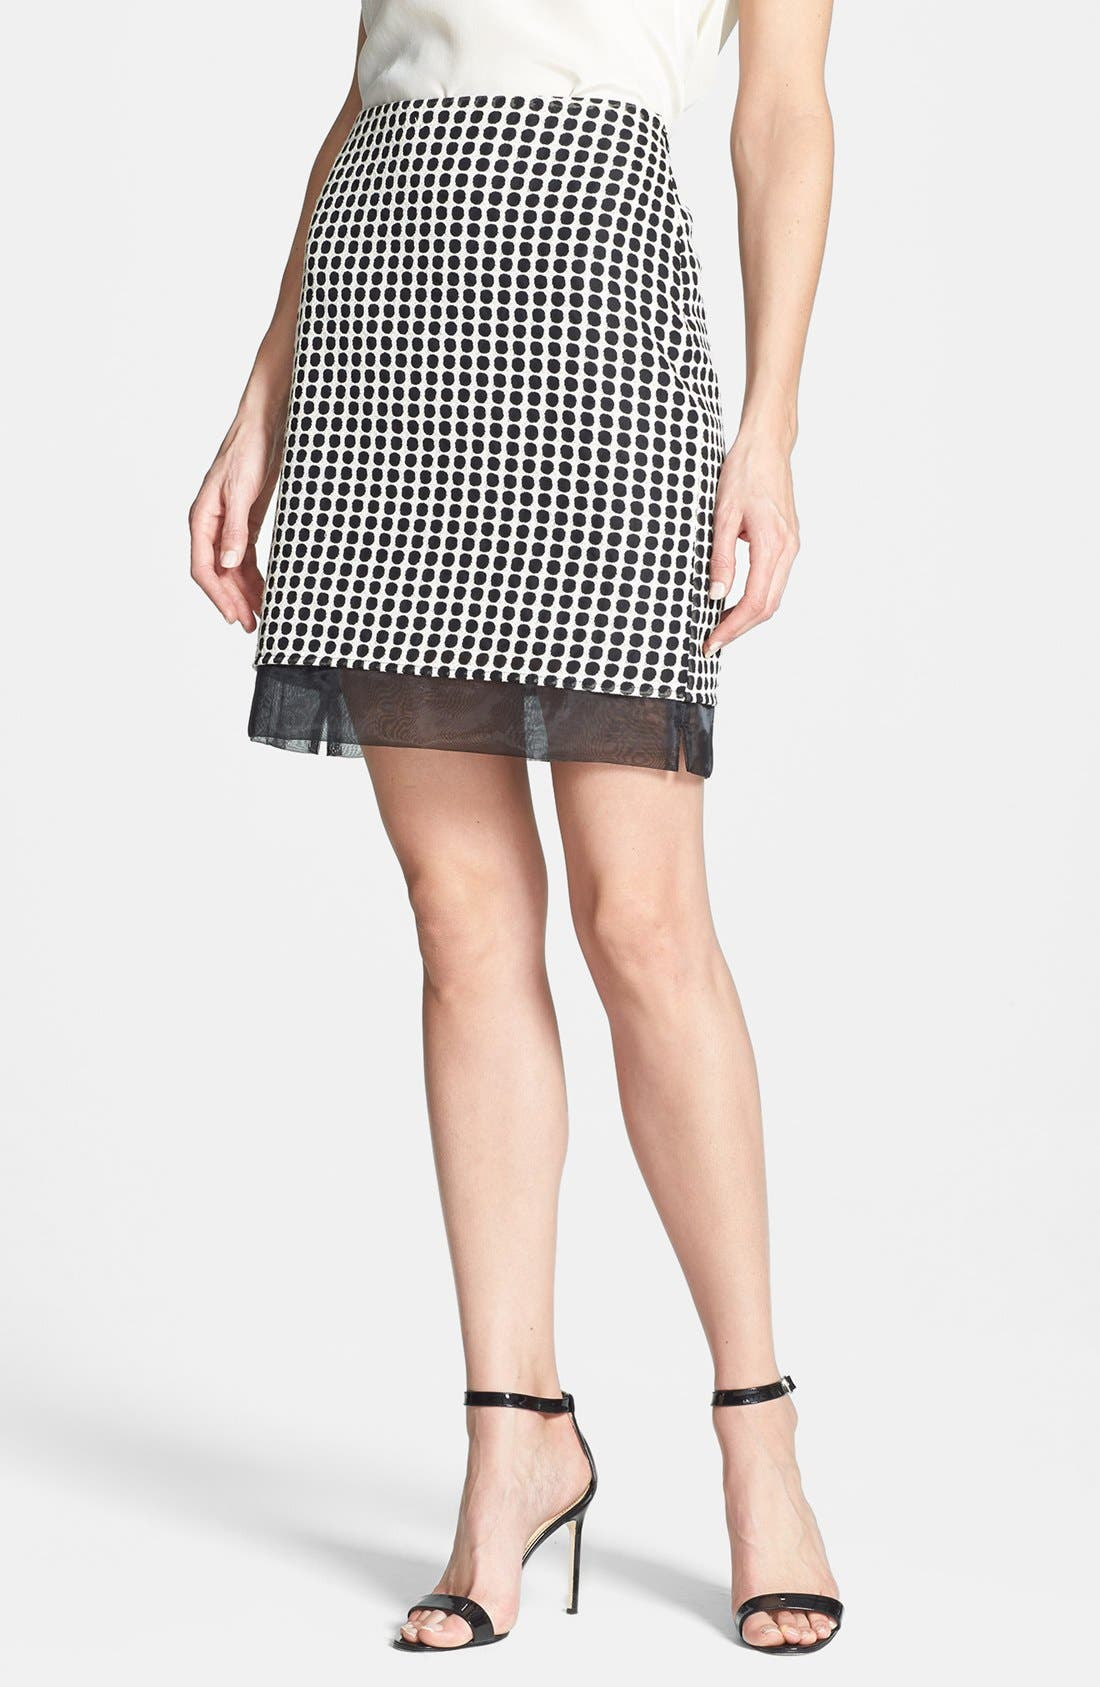 Alternate Image 1 Selected - Vince Camuto Two-Tone Dot Print Organza Skirt